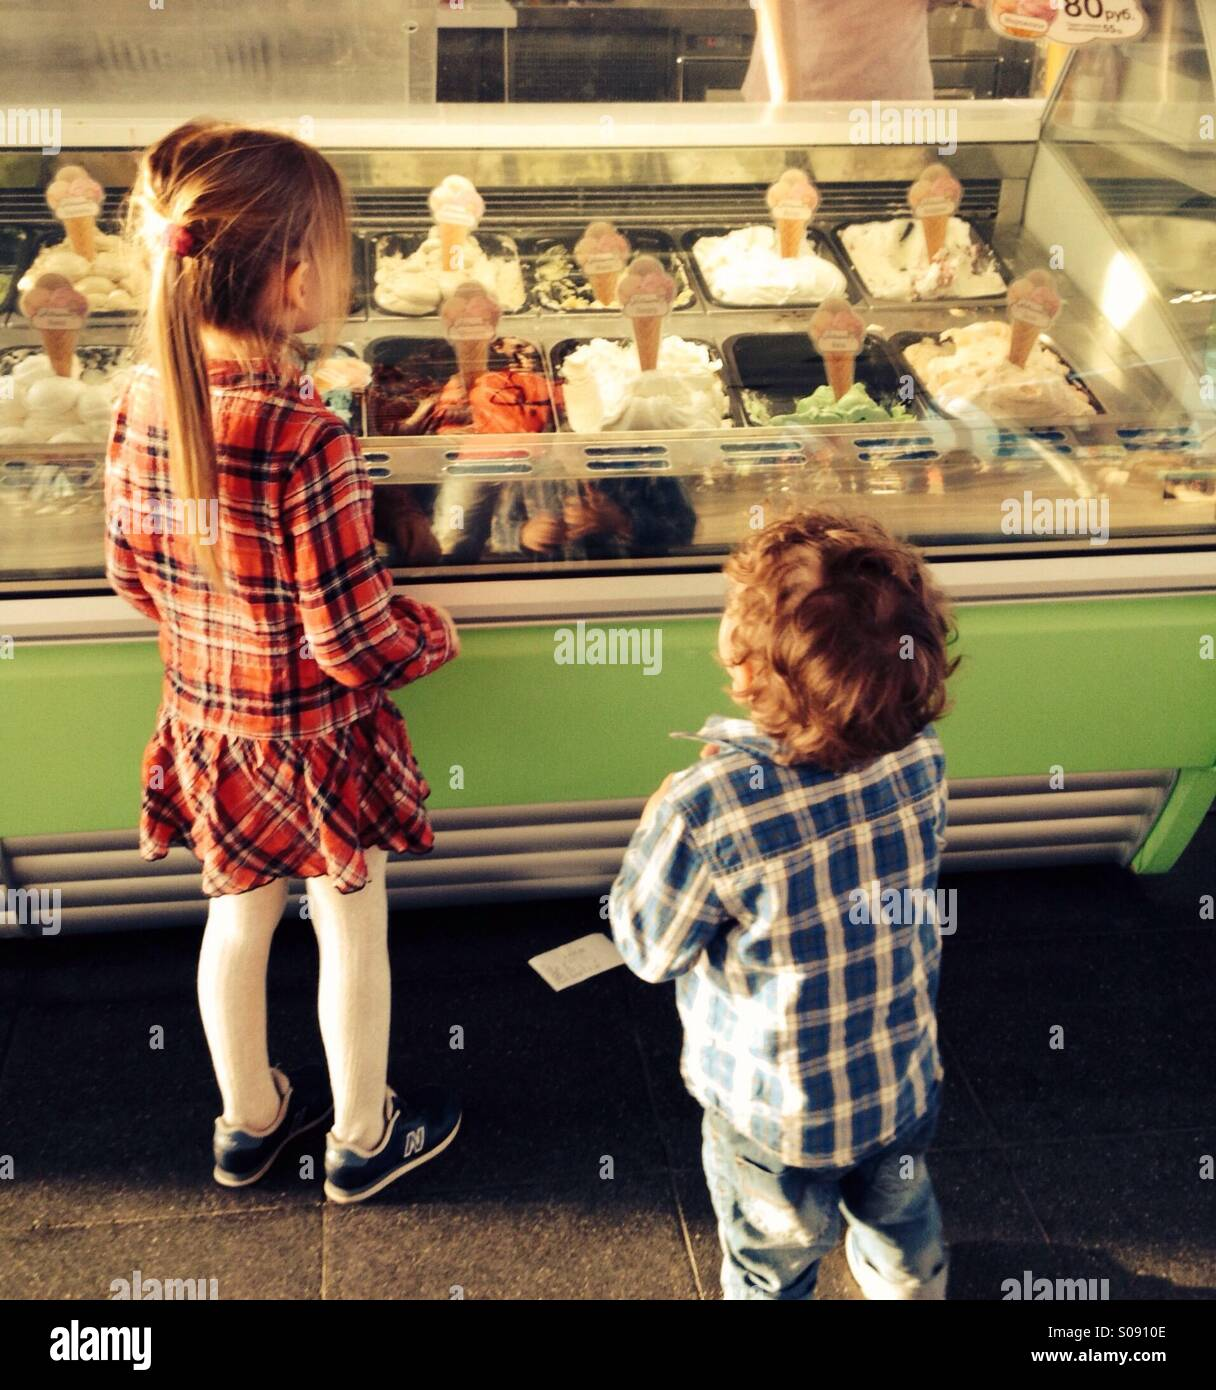 Kids choosing ice cream - Stock Image